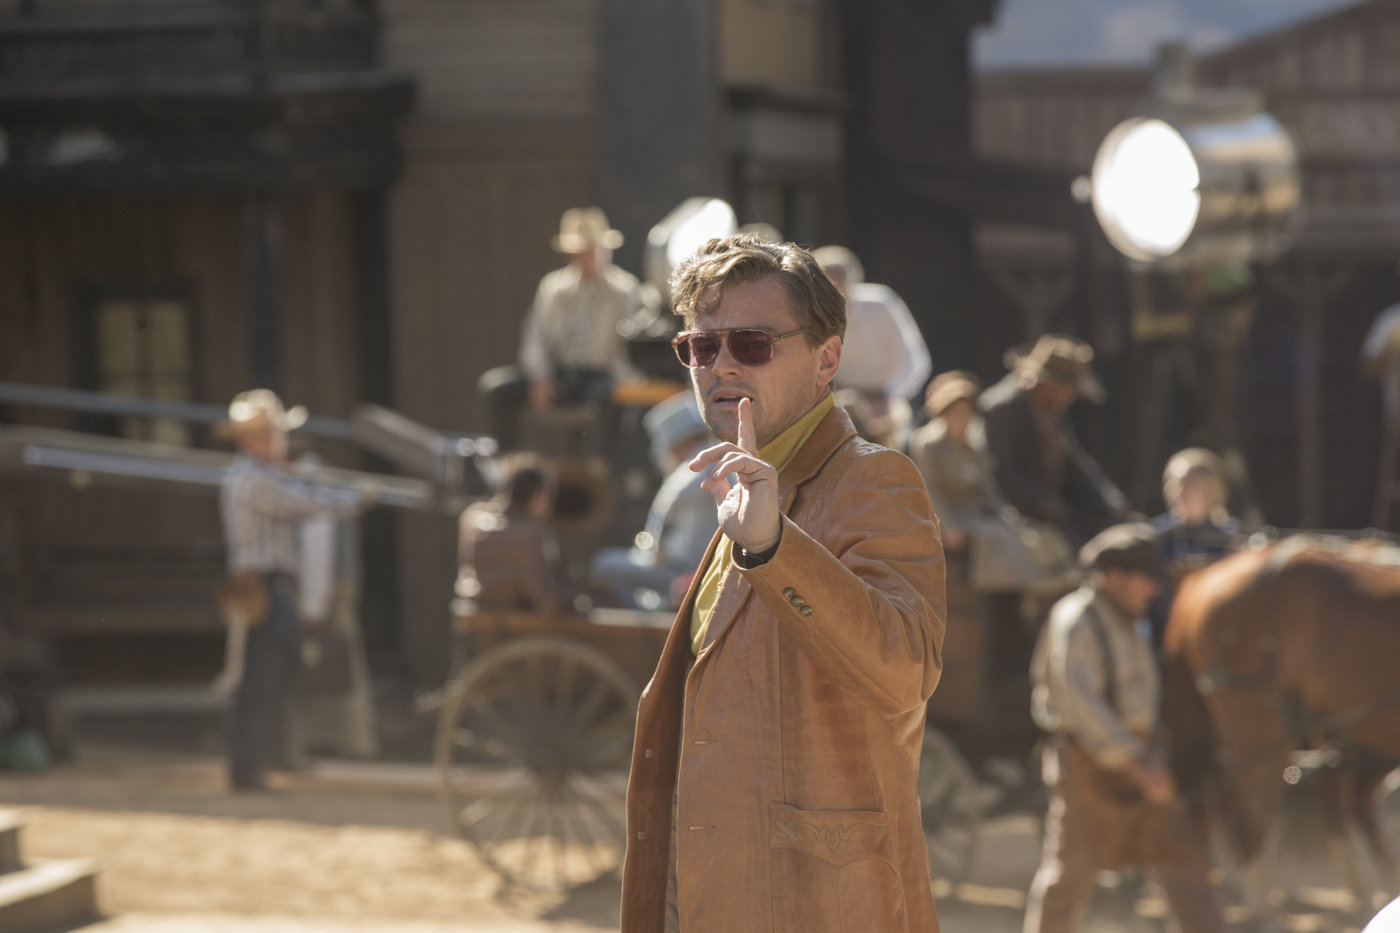 2019_08_04_Once Upon A Time In Hollywood_023jpg